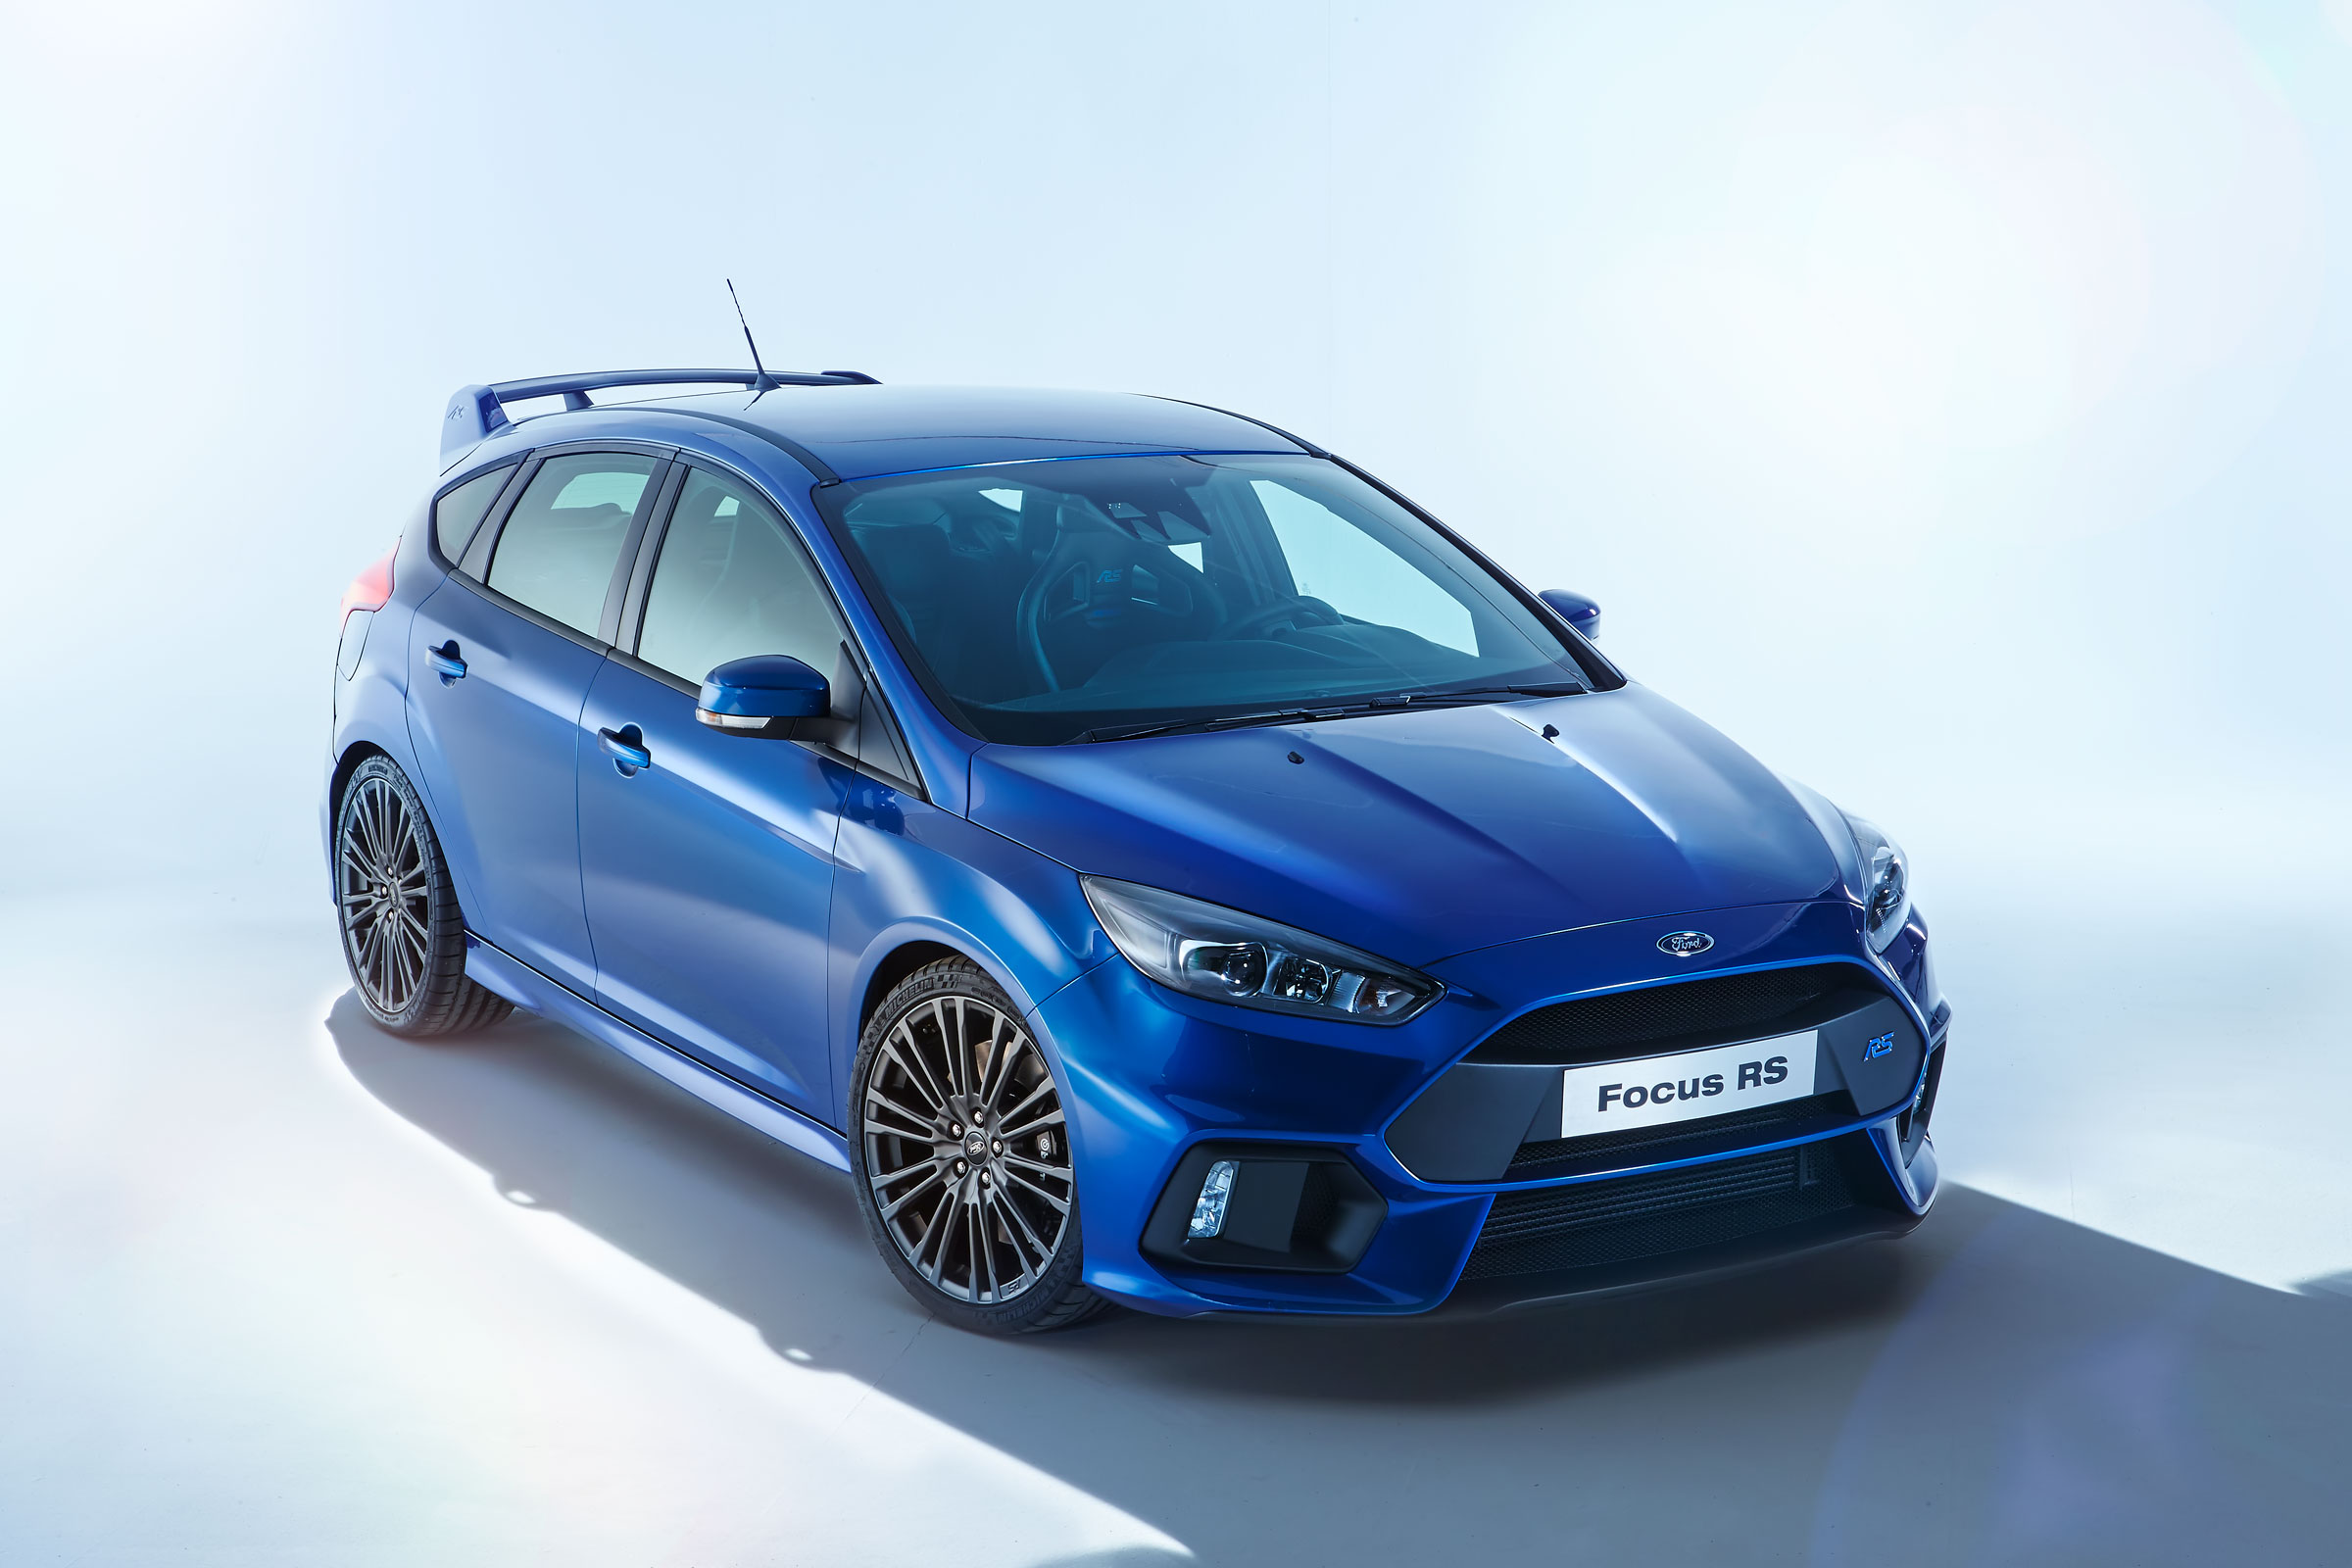 2015 ford focus rs wallpaper 2 2400x1600